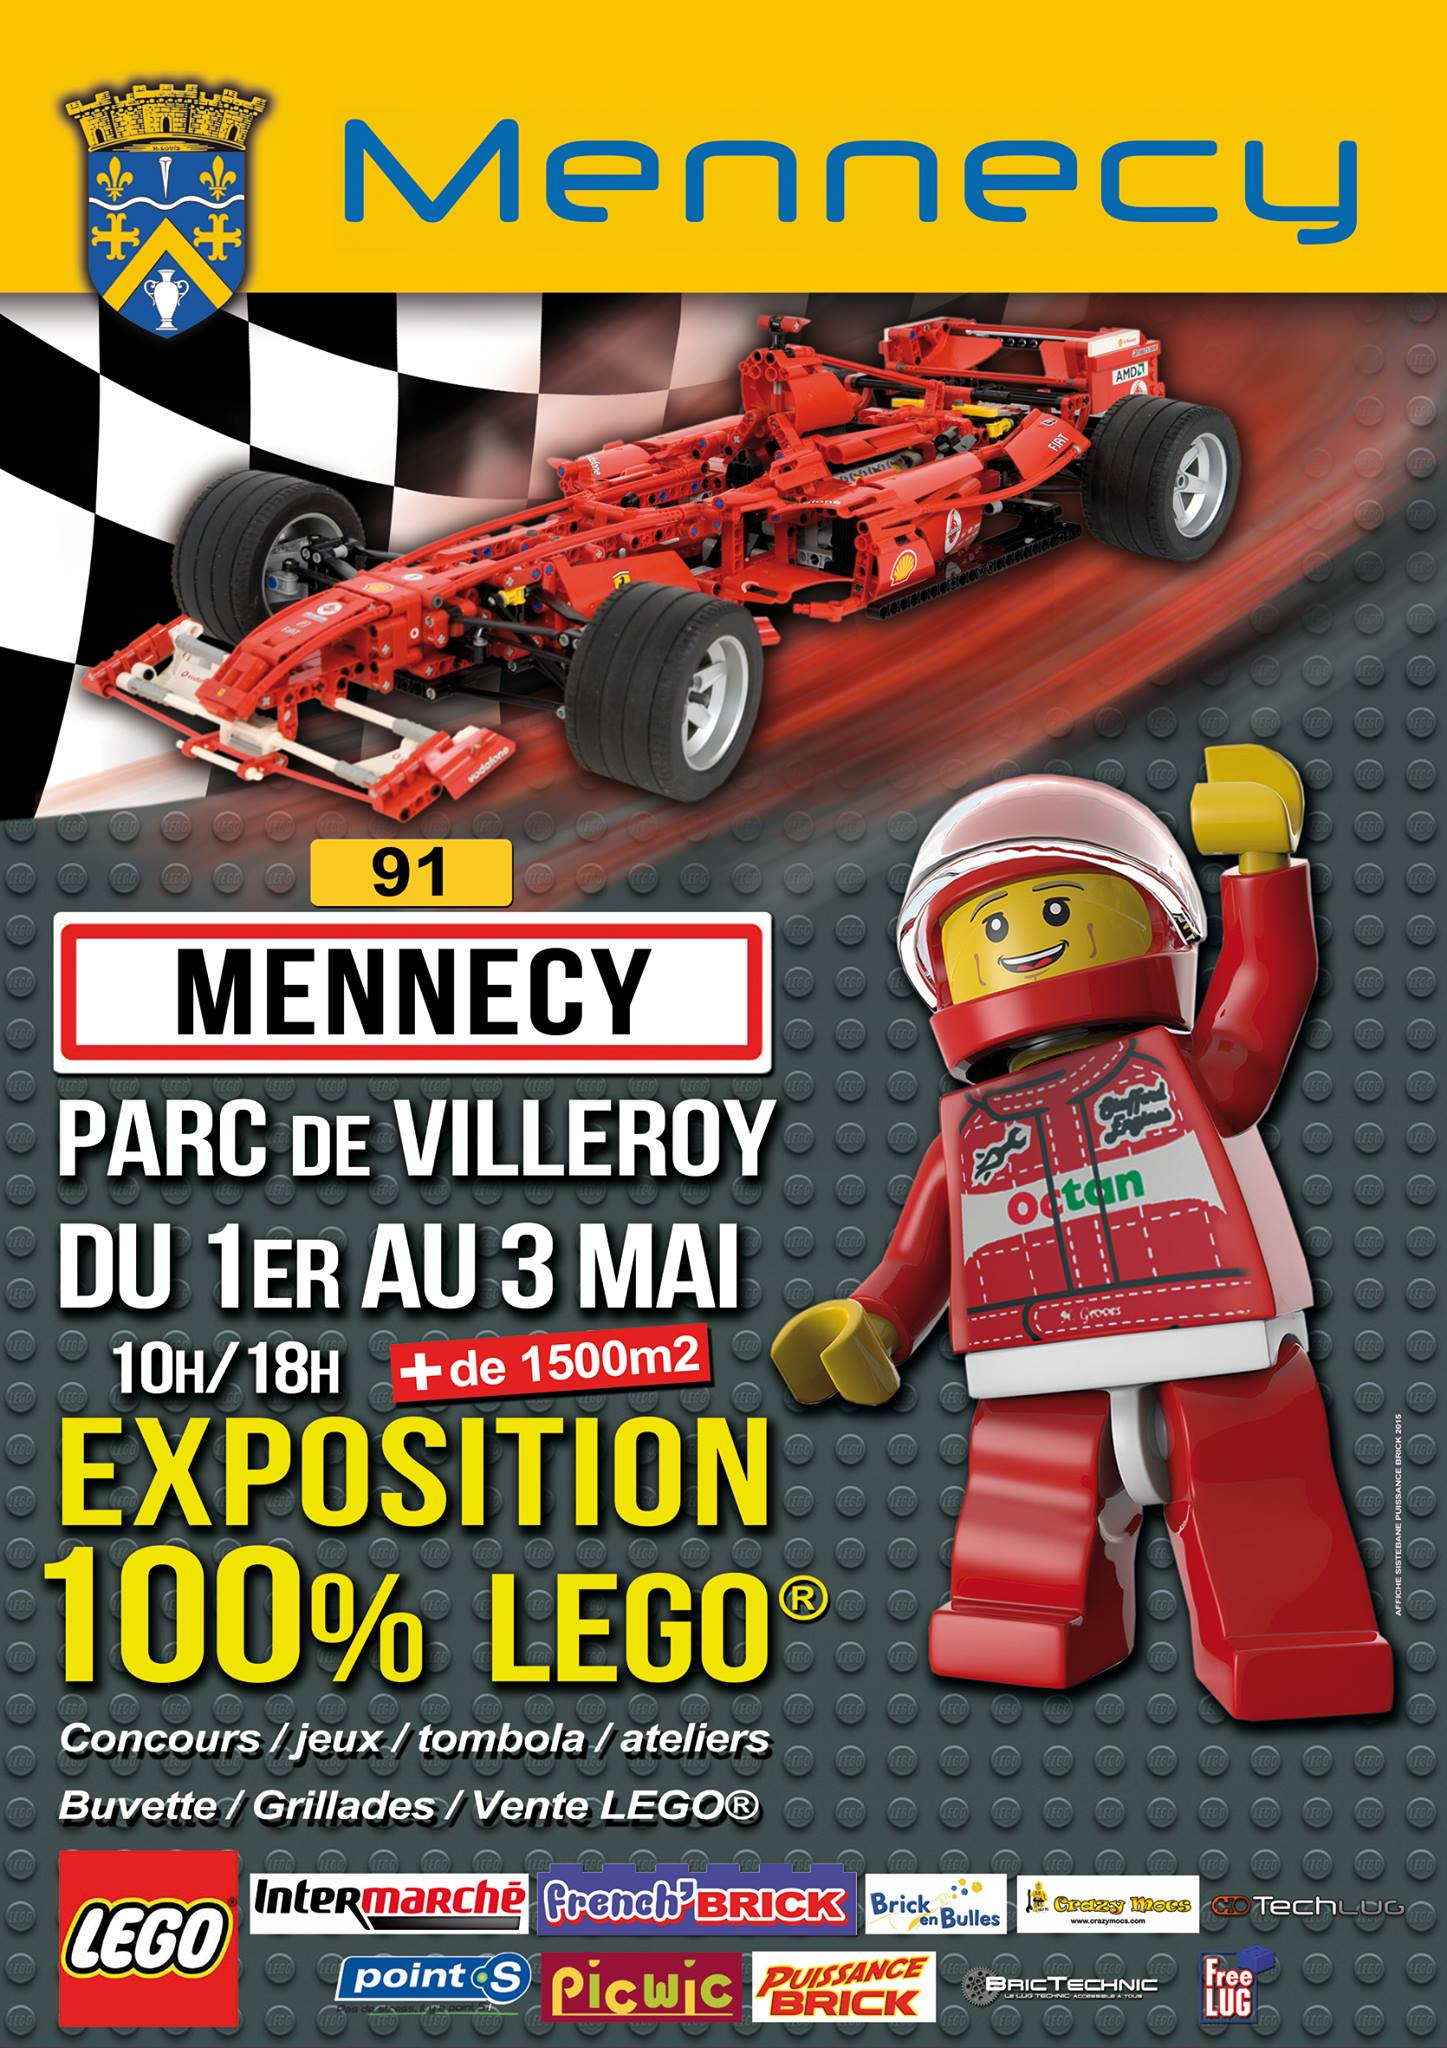 Affiche expo 100% LEGO Mennecy 2015